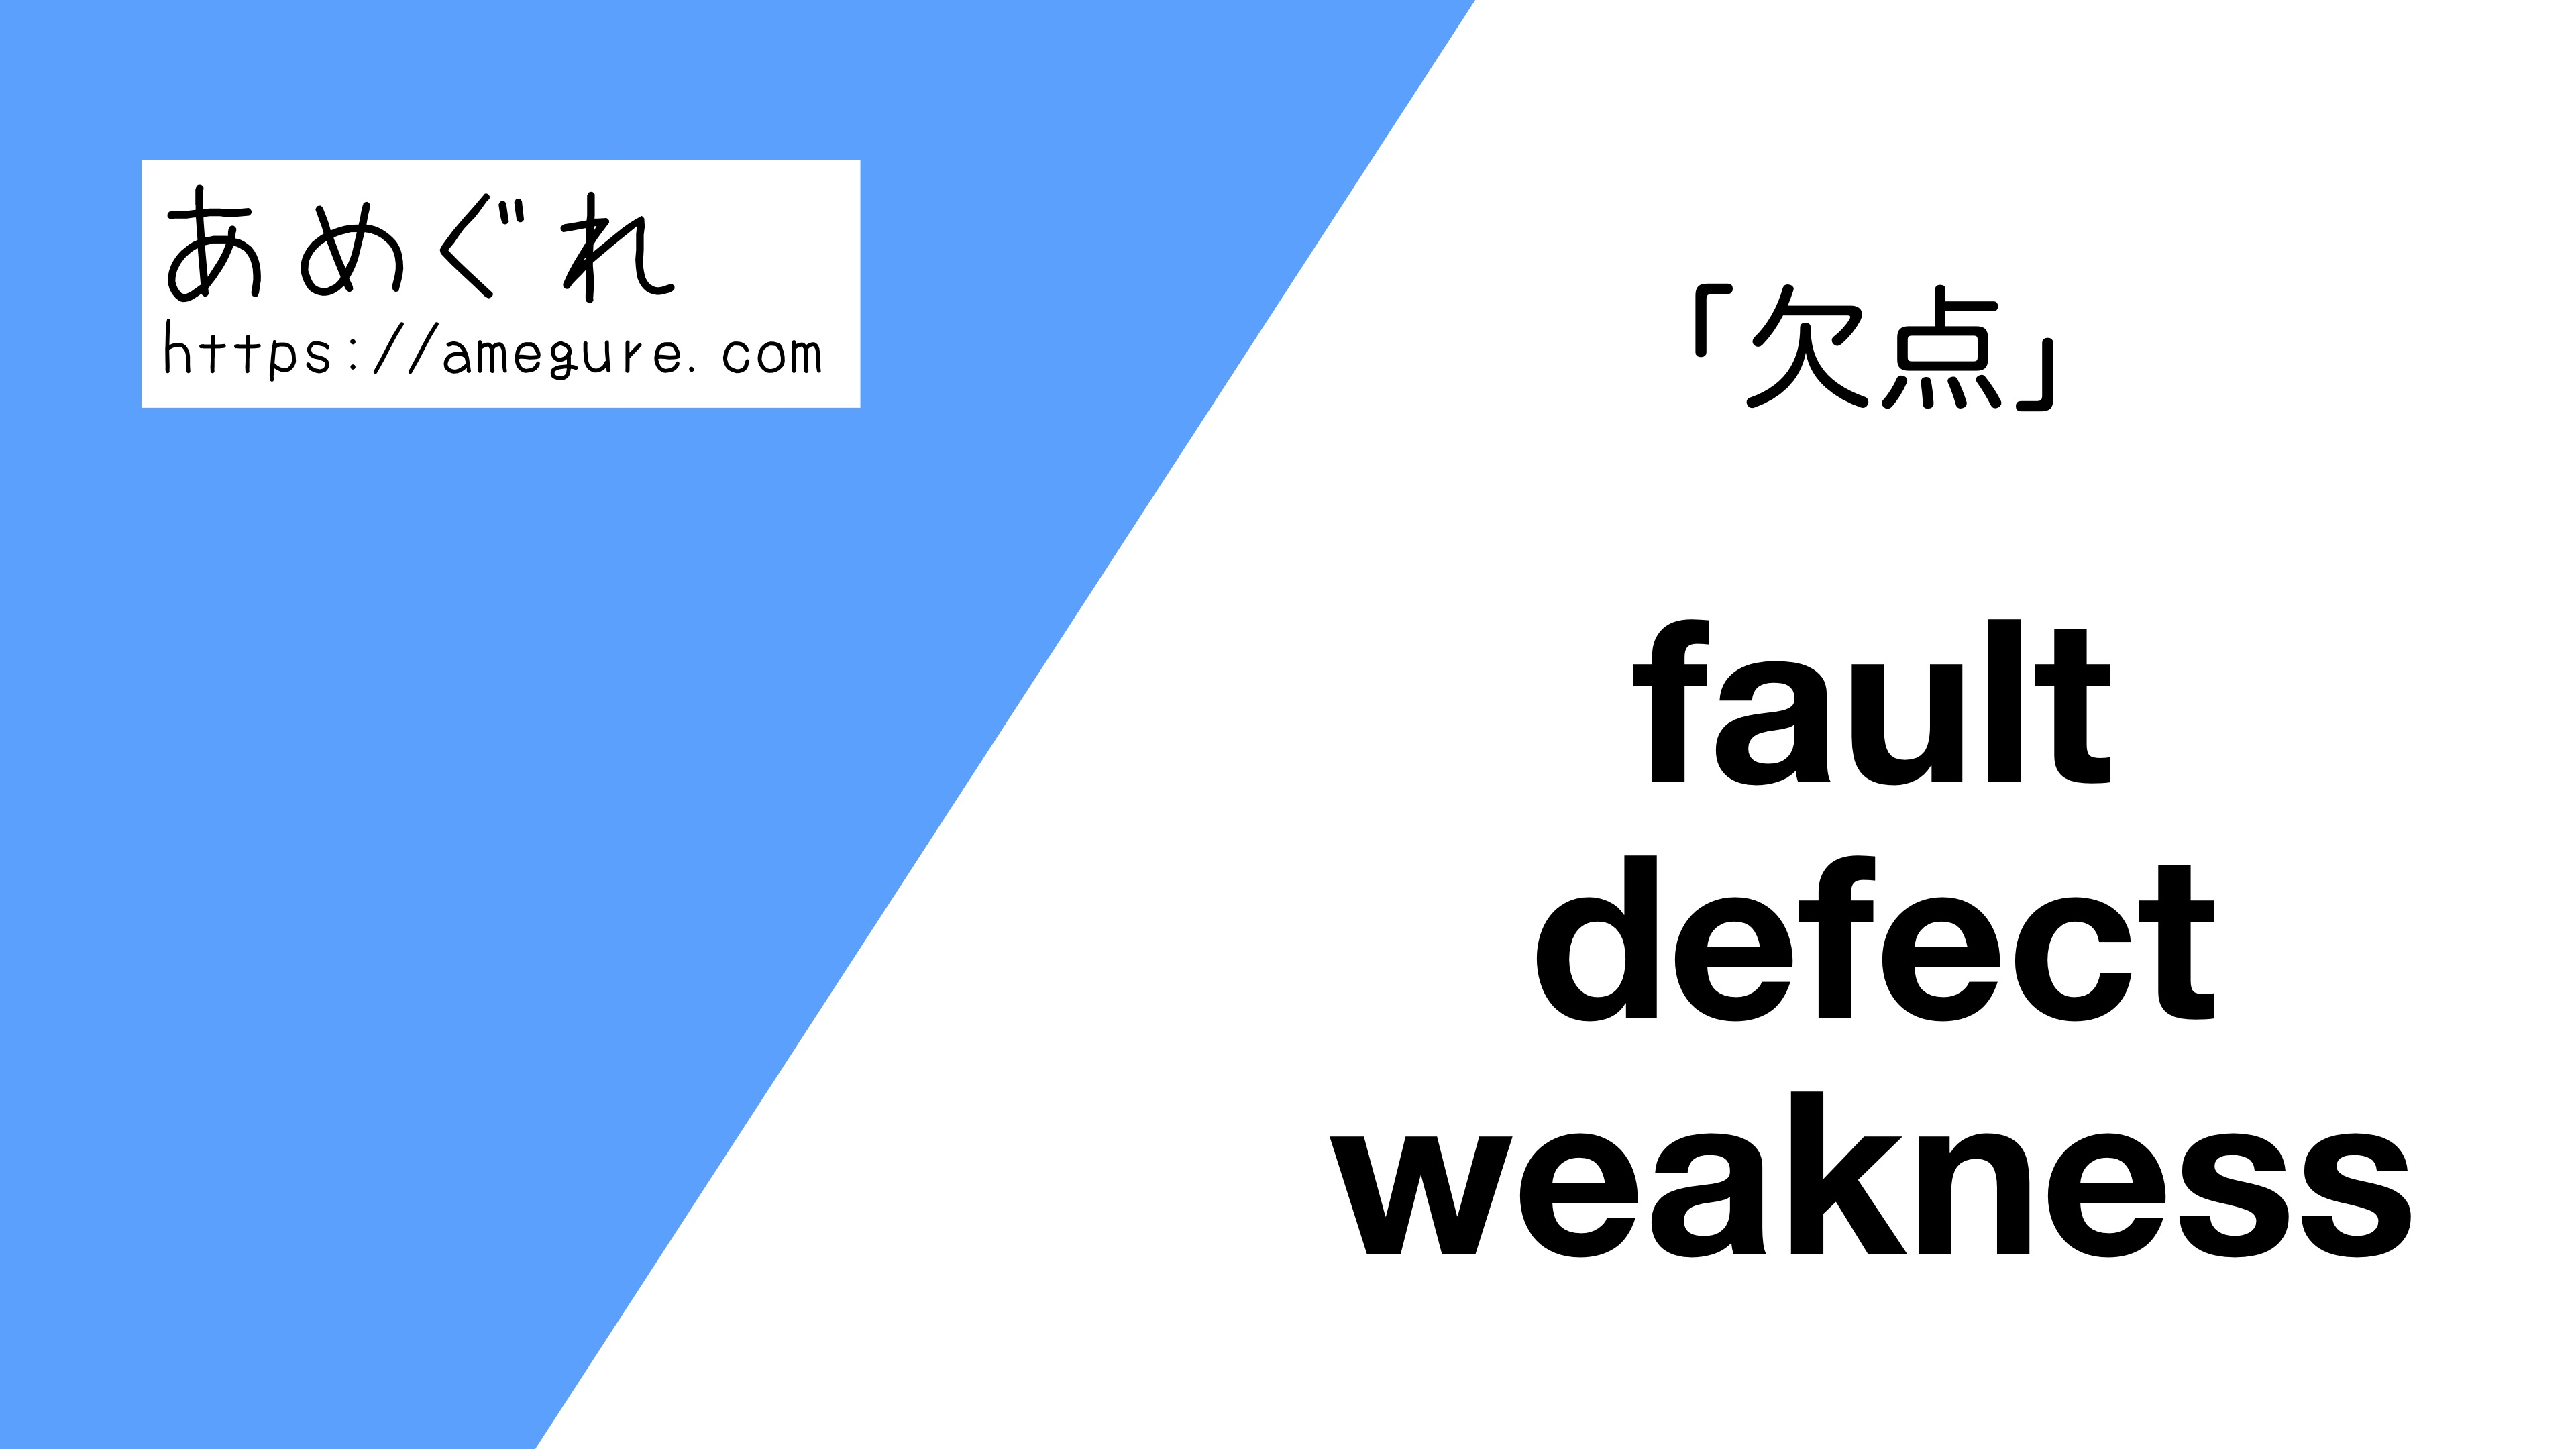 fault-defect-weakness違い